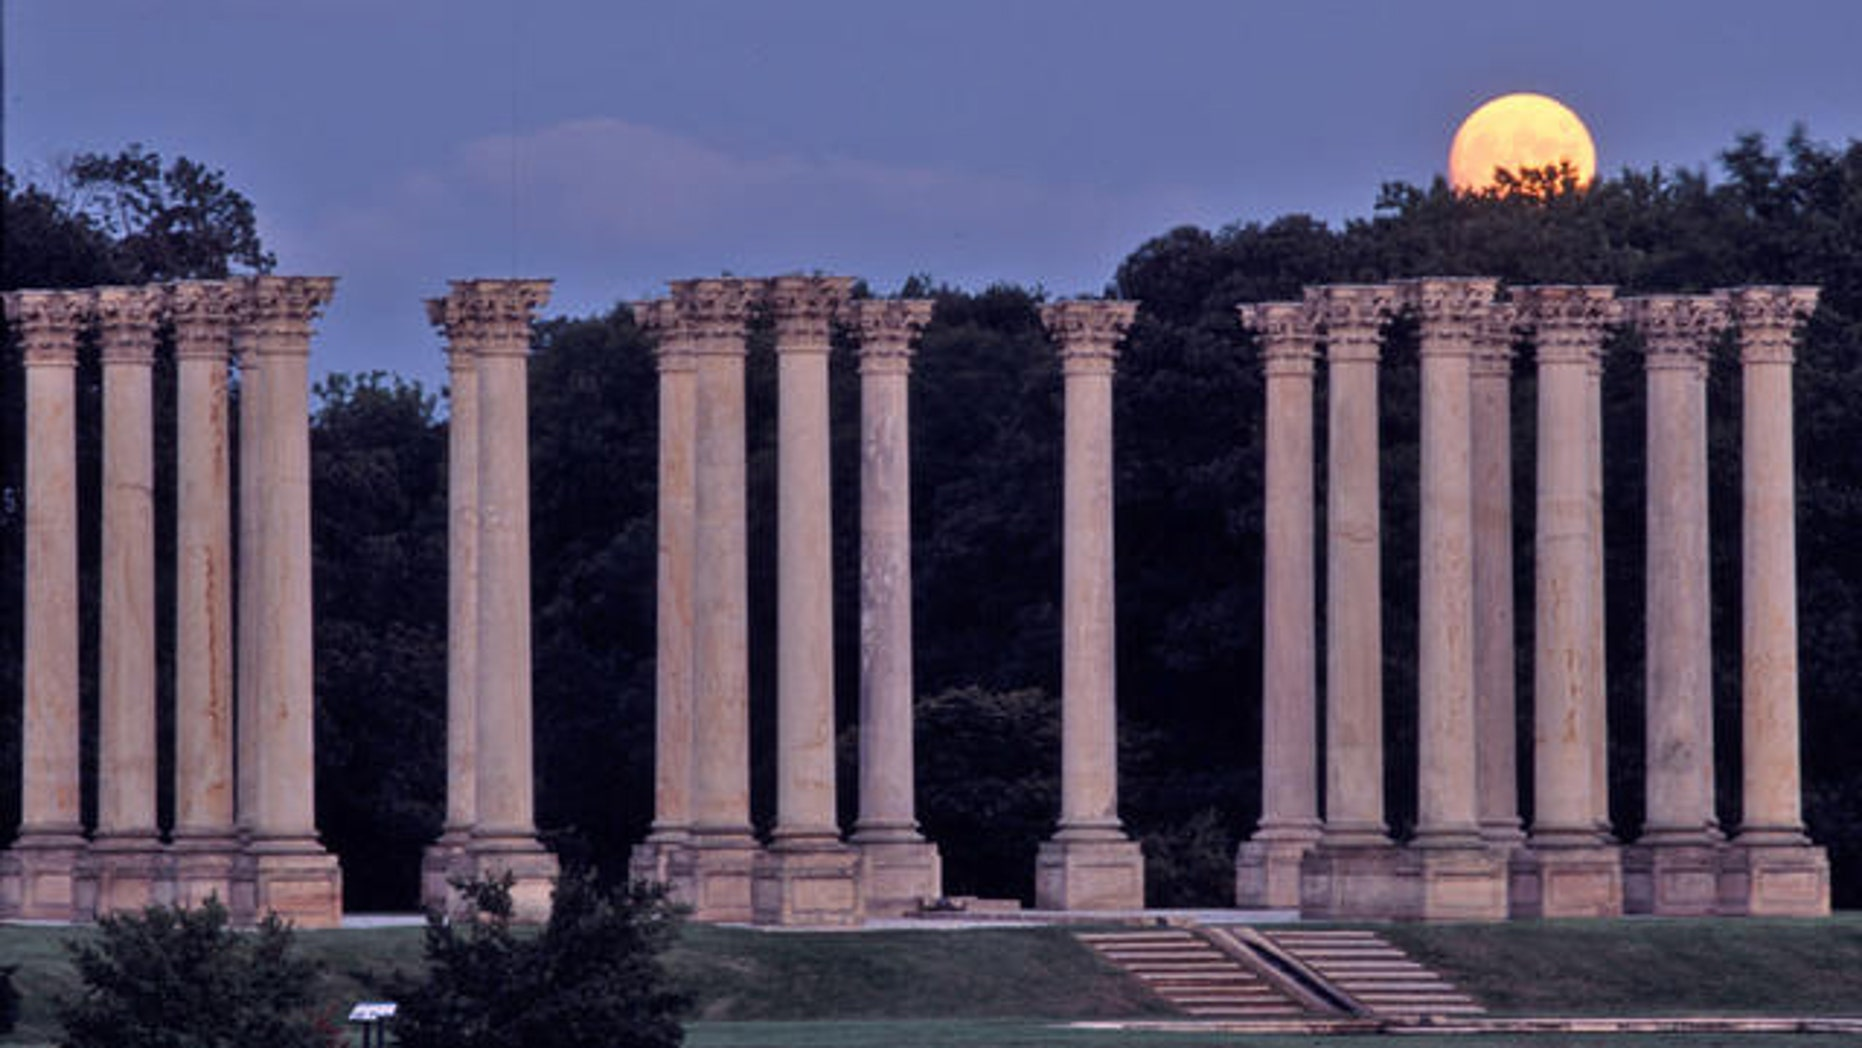 This undated photo released by the National Arboretum shows the National Capitol Columns at the U.S. National Arboretum in Washington.